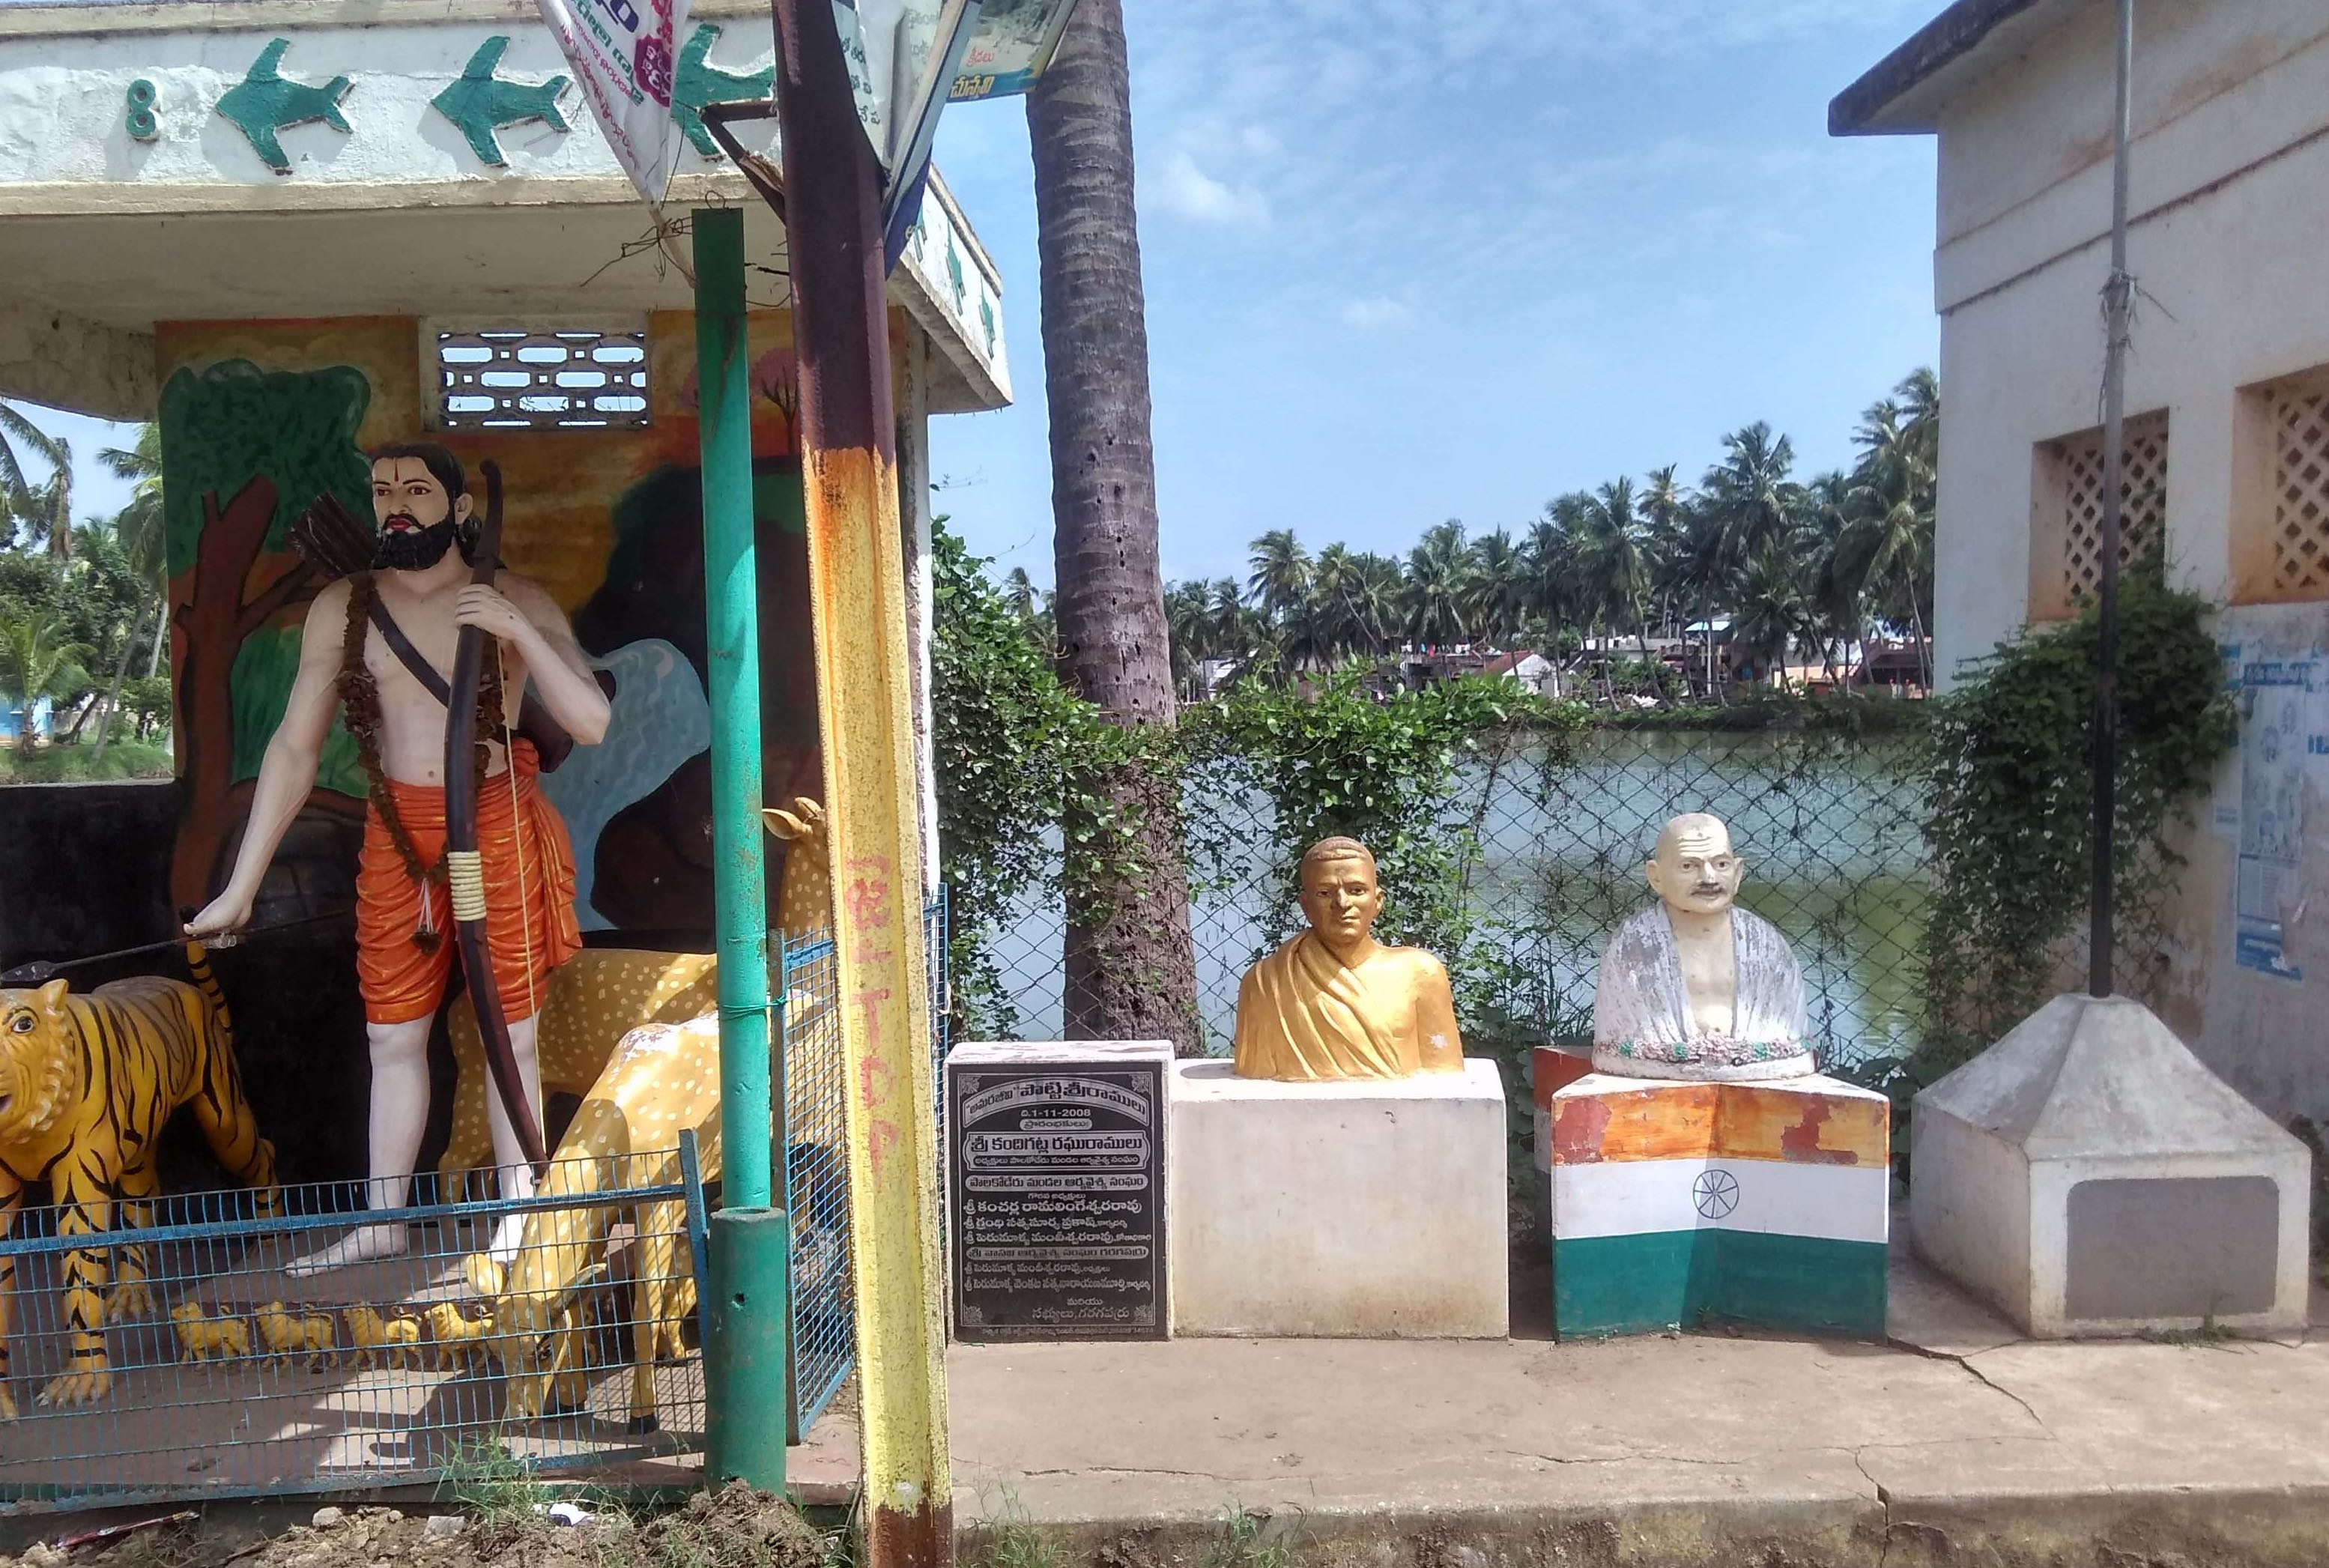 The statues of Mahatma Gandhi, Alluri Sita Rama Raju and Potti Sreeramulu on the banks of the village pond. Credit: Rahul Maganti